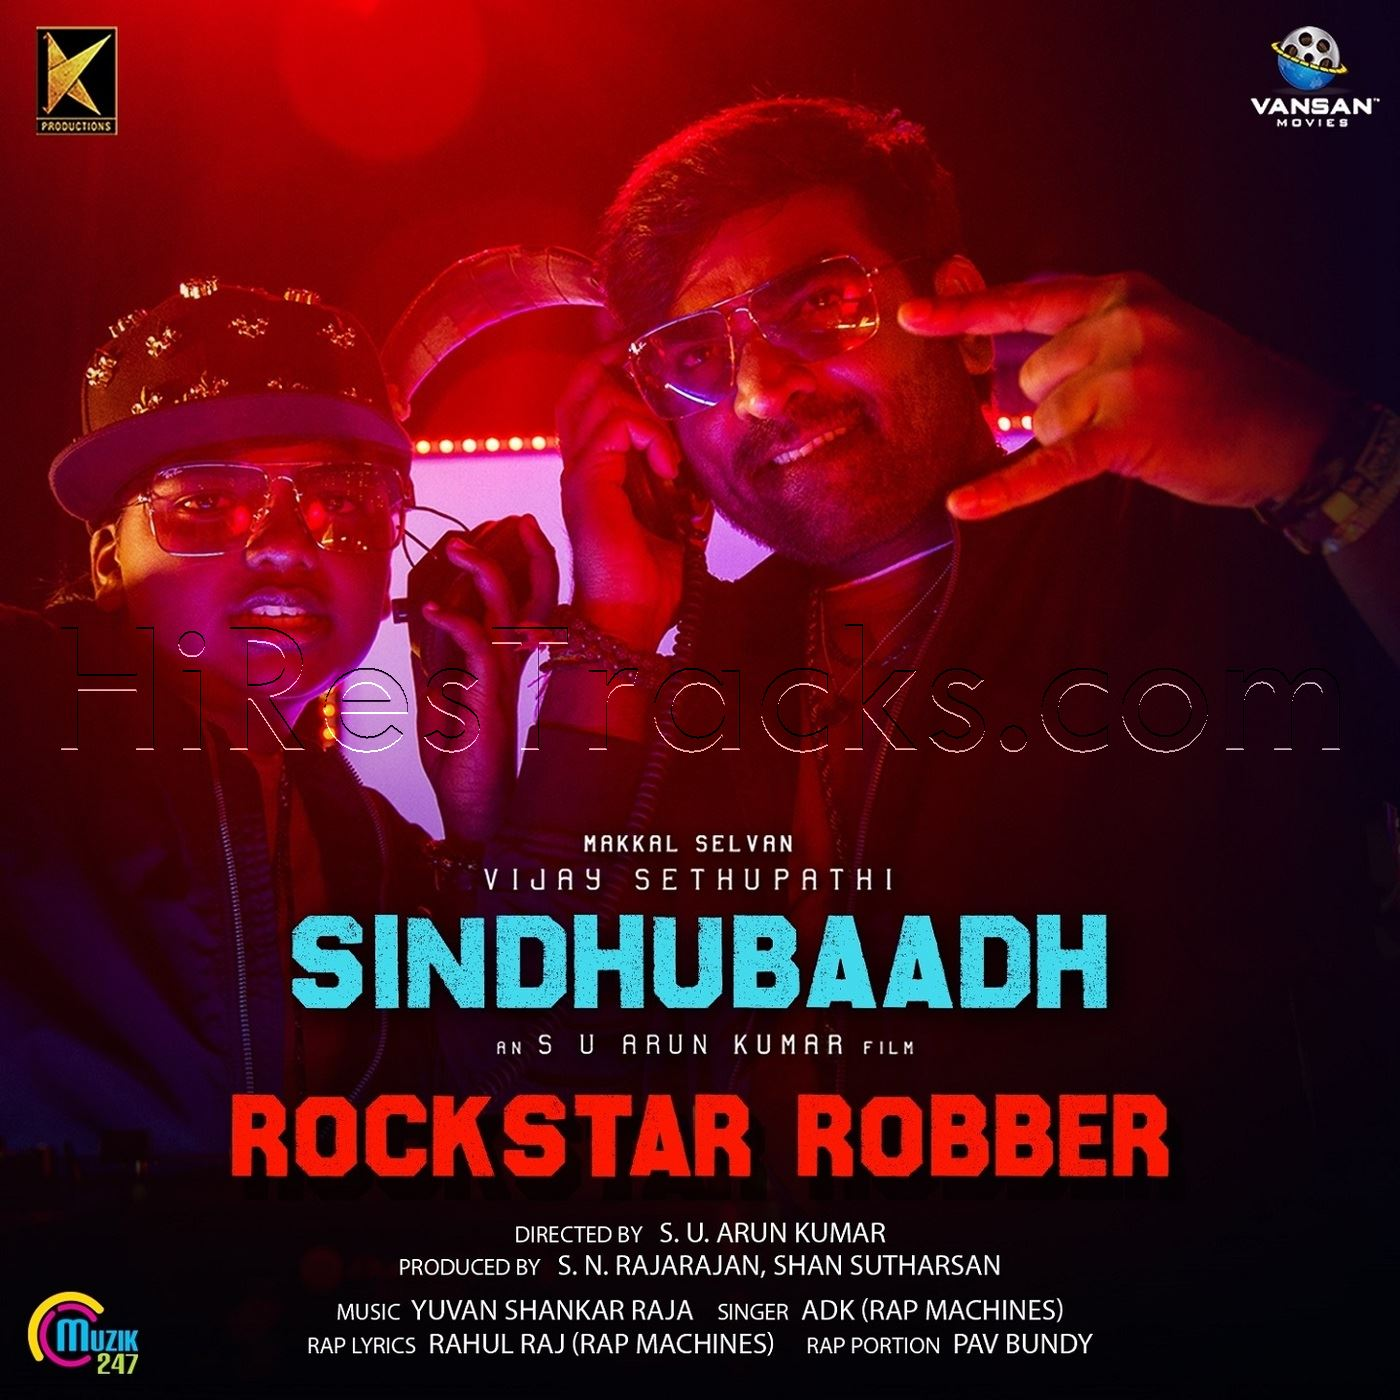 Rockstar Robber (From Sindhubaadh) (2019)